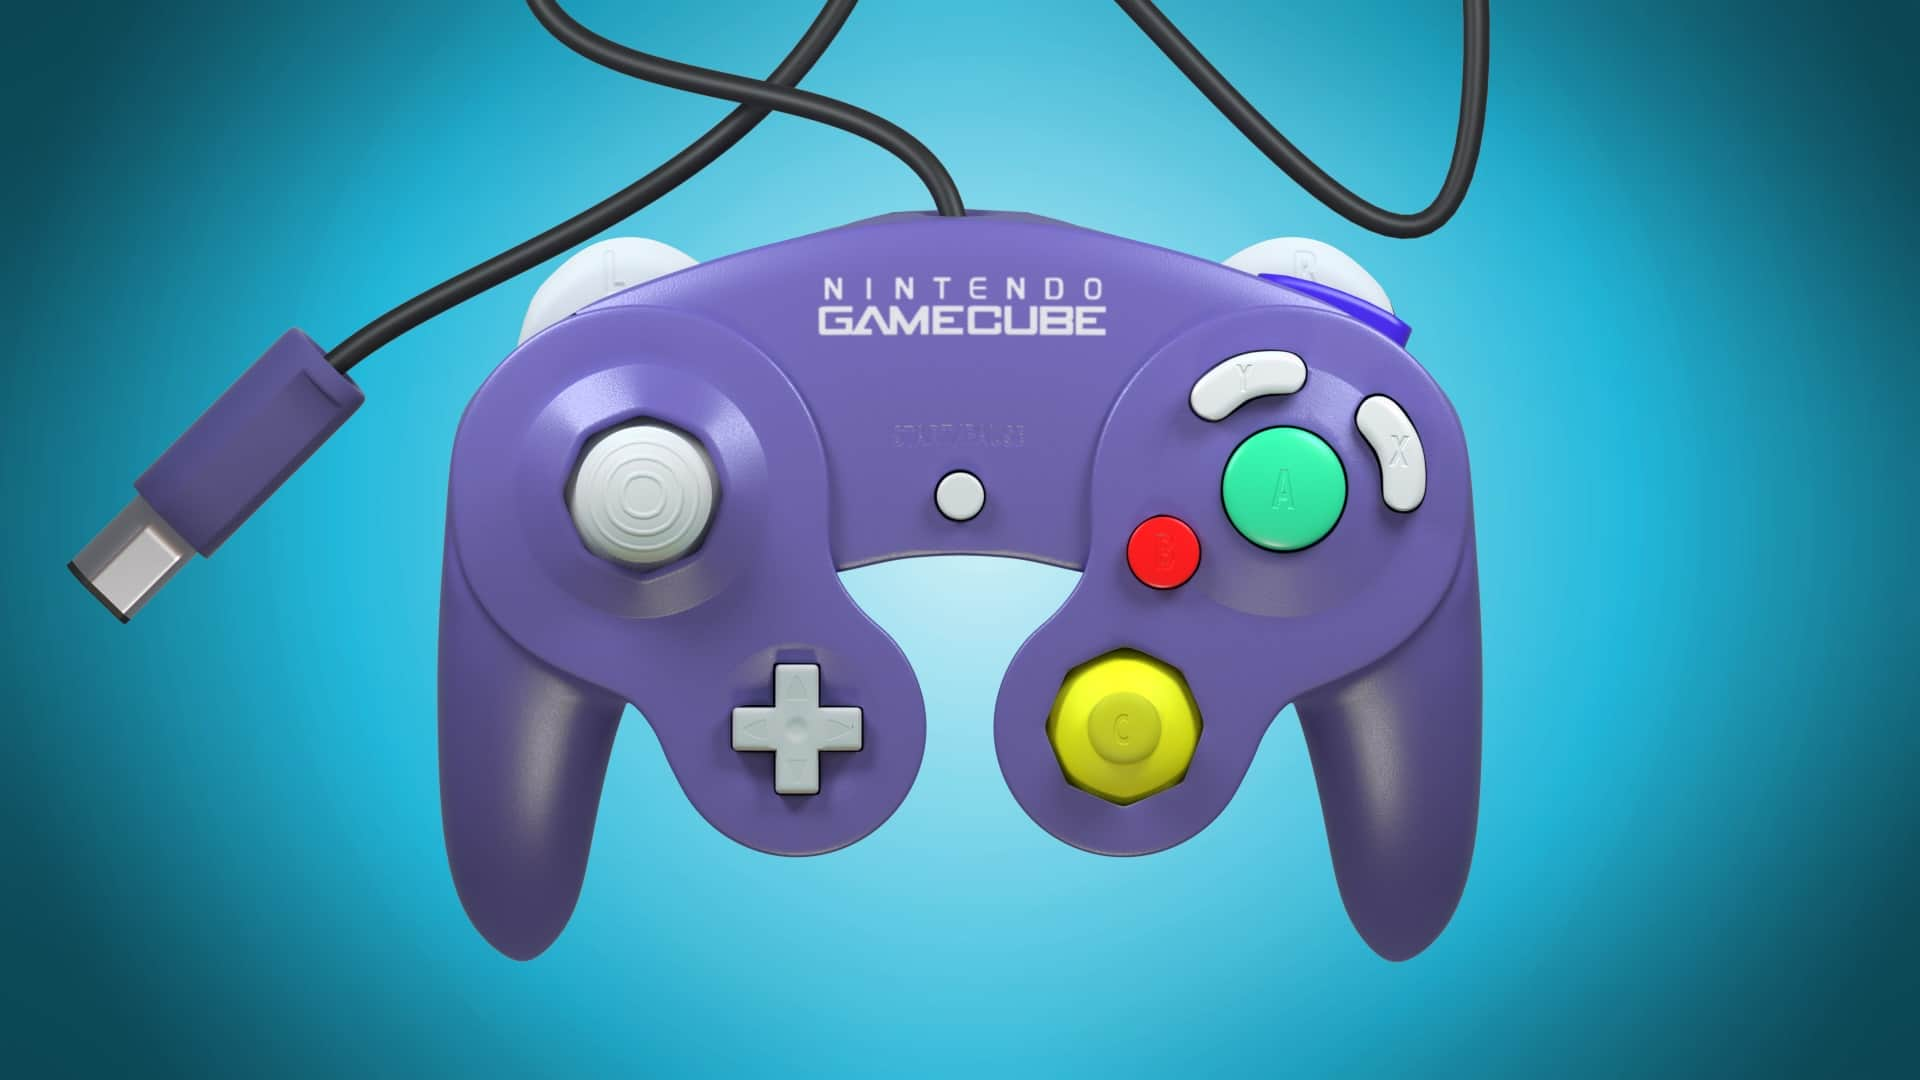 Switch GameCube, Nintendo Switch GameCube Controller Adapter Revealed, MP1st, MP1st